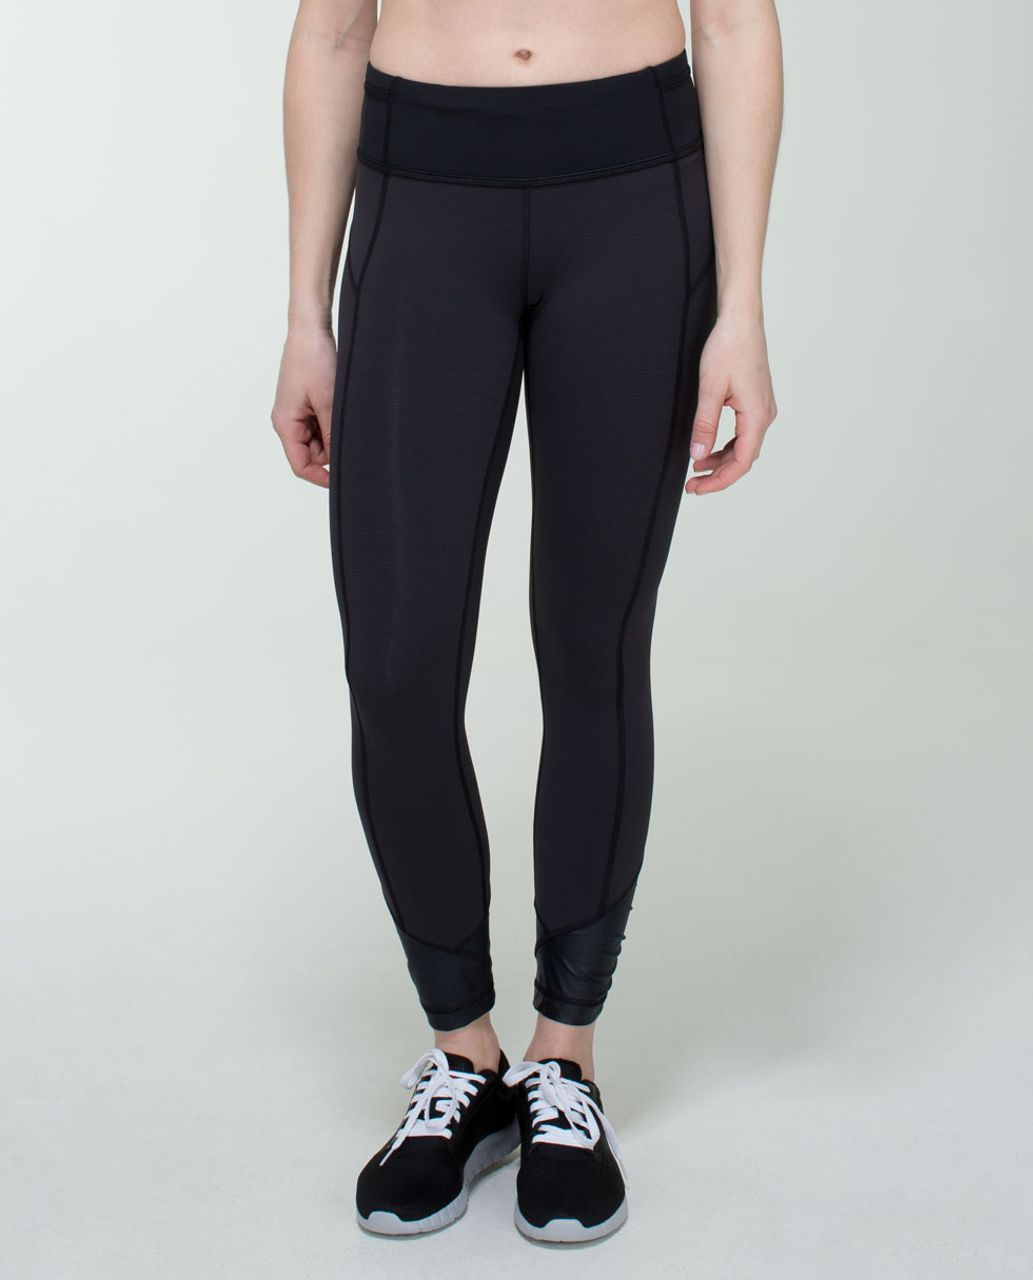 Lululemon Pace Queen Tight - Wee Stripe Black / Black